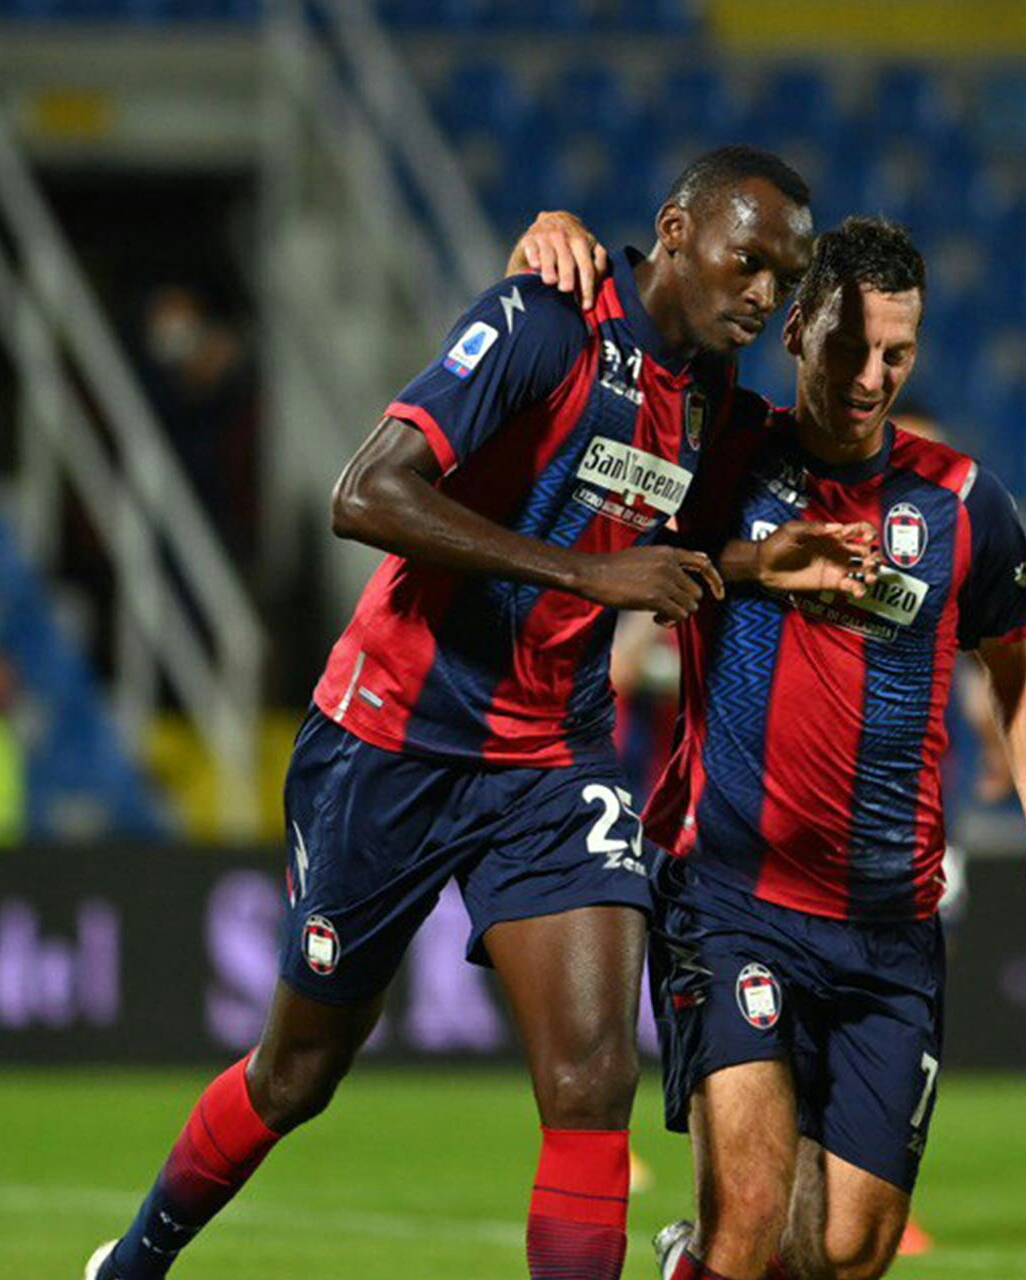 Serie A: Nwankwo On Target As Struggling Crotone Draw Vs Juventus